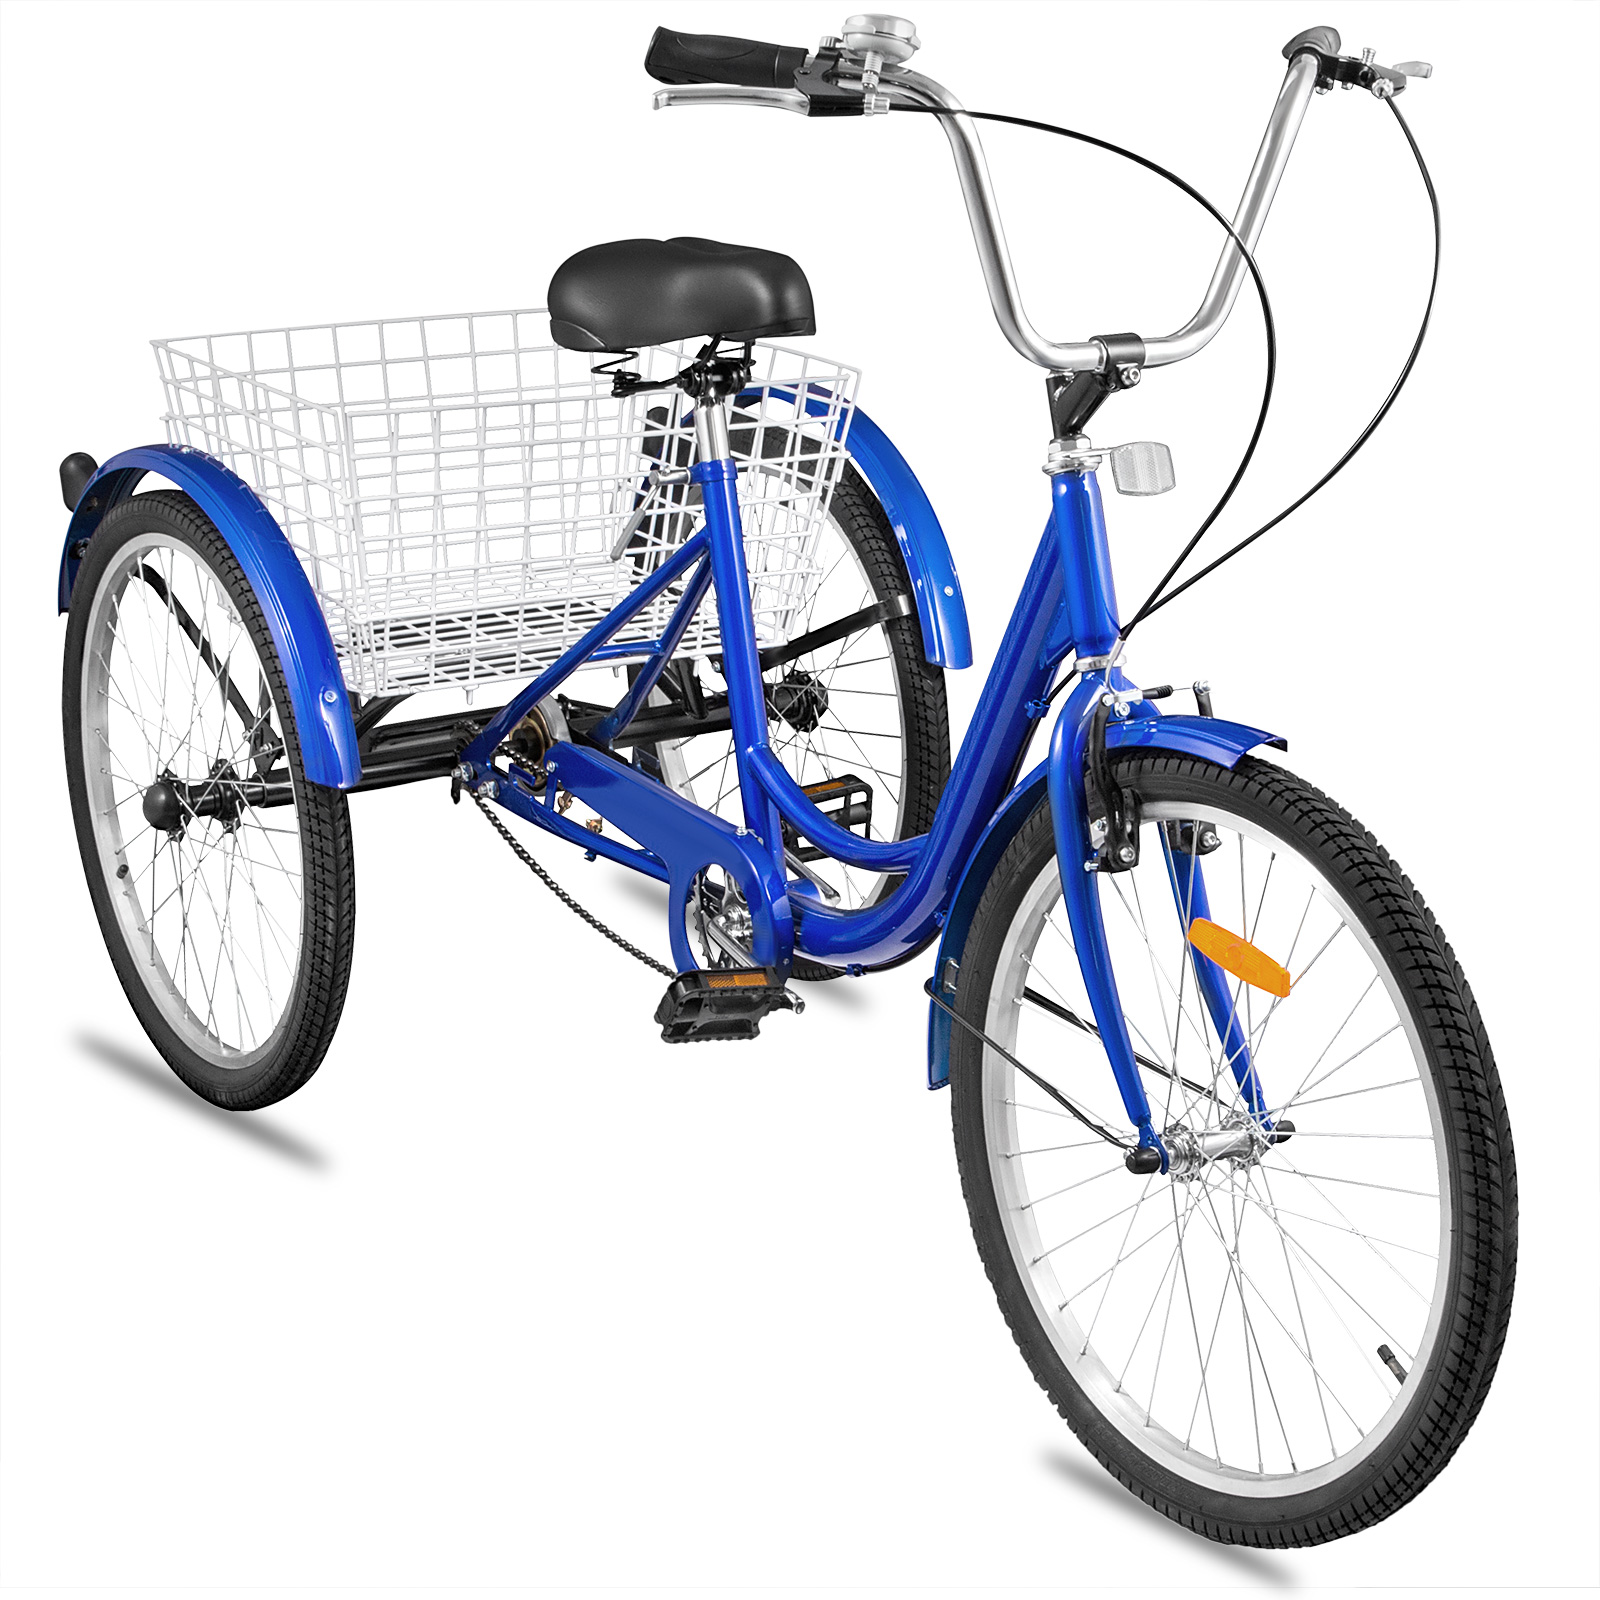 20-24-26-034-Adult-Tricycle-1-7-Speed-3-Wheel-Large-Basket-For-Shopping-Optional thumbnail 345